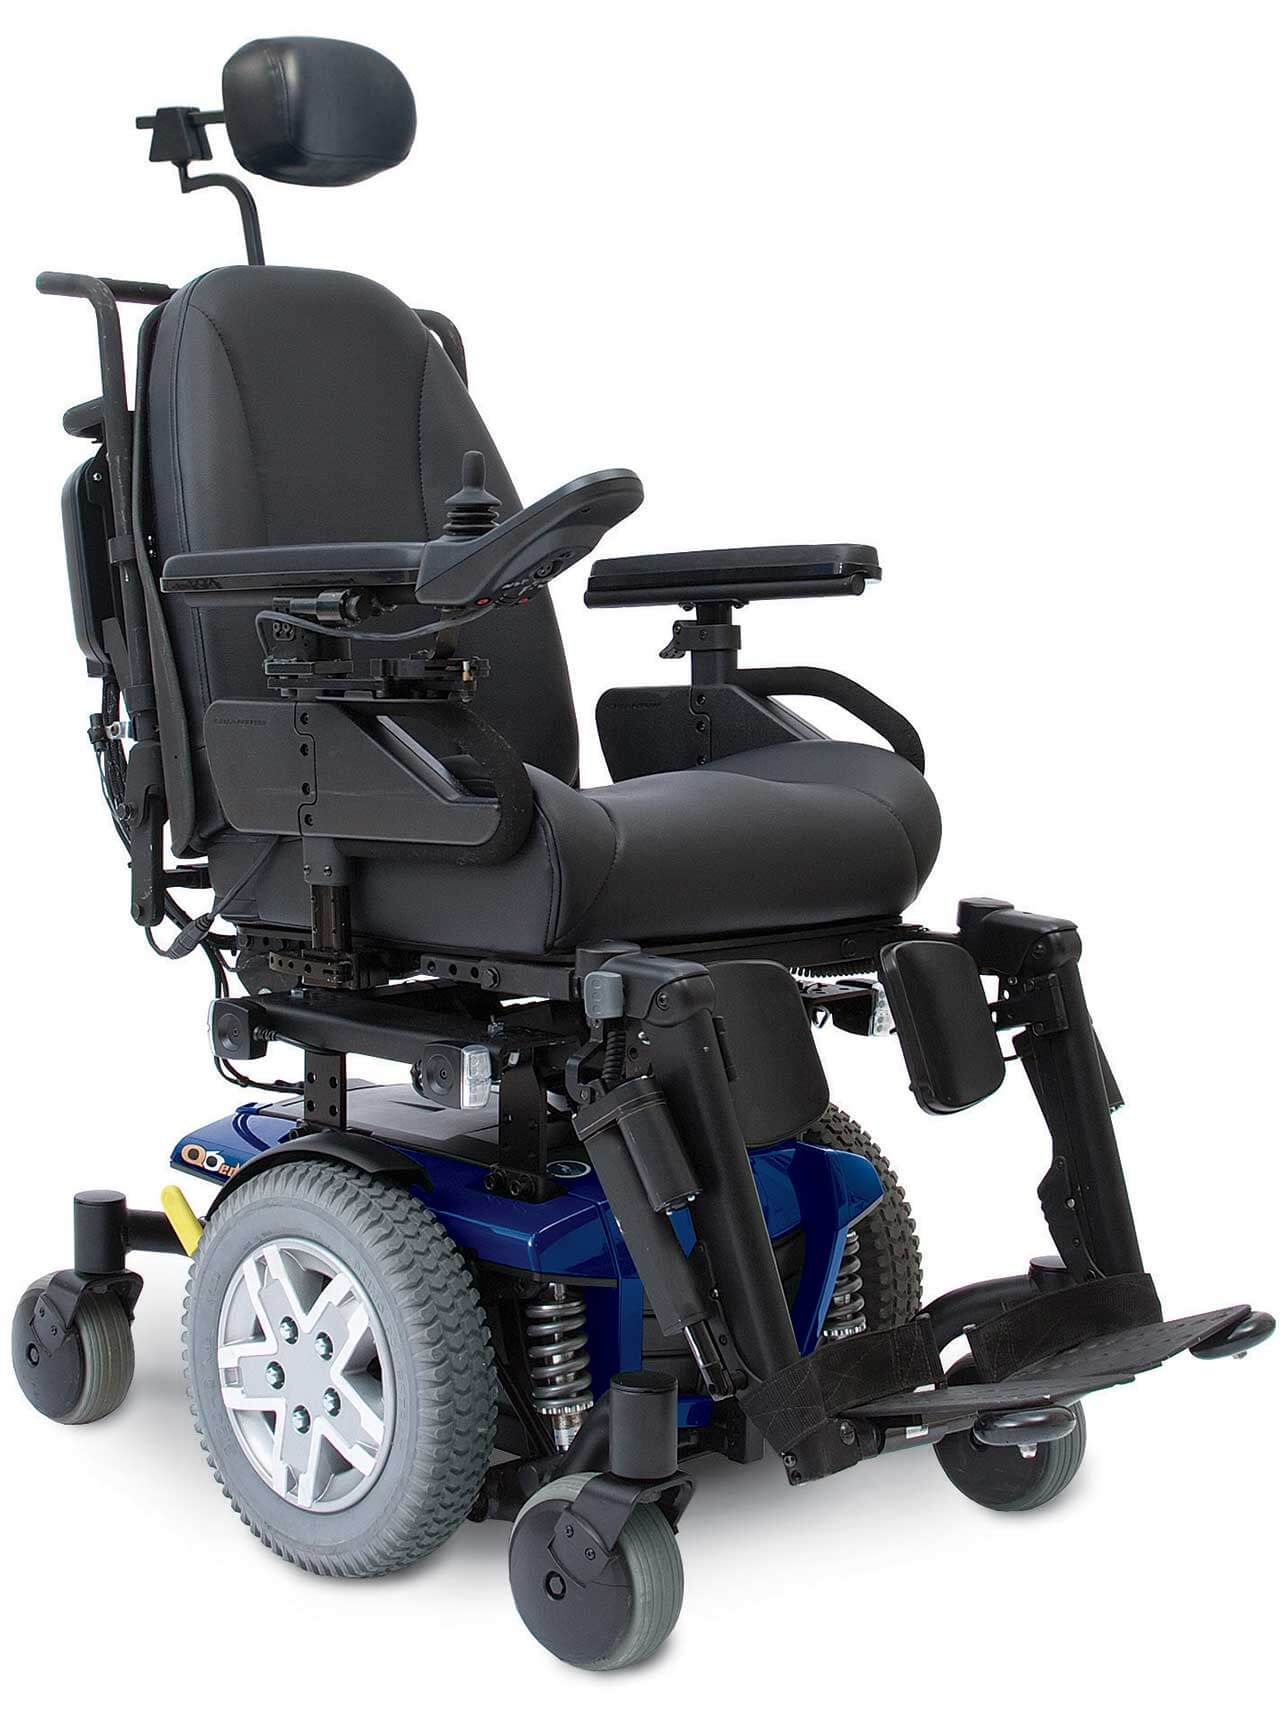 Quantum Chair Pride Q6 Edge Powerchair Electric Wheelchair For Hire Or Sale